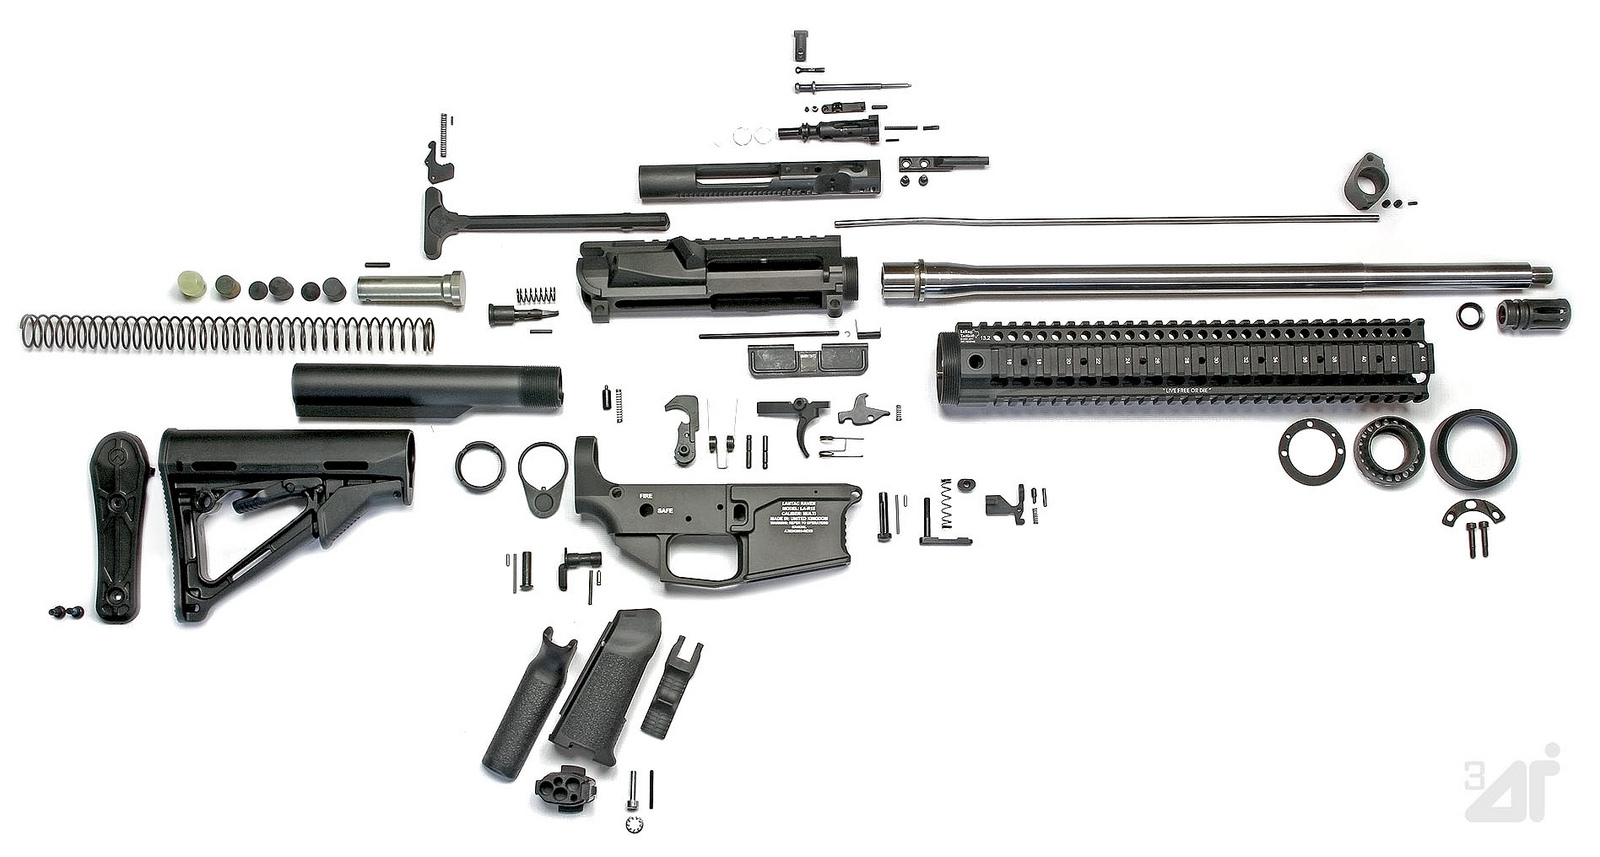 Ar15 Build Class Build It Shoot It Take It Home Florida Gun Supply